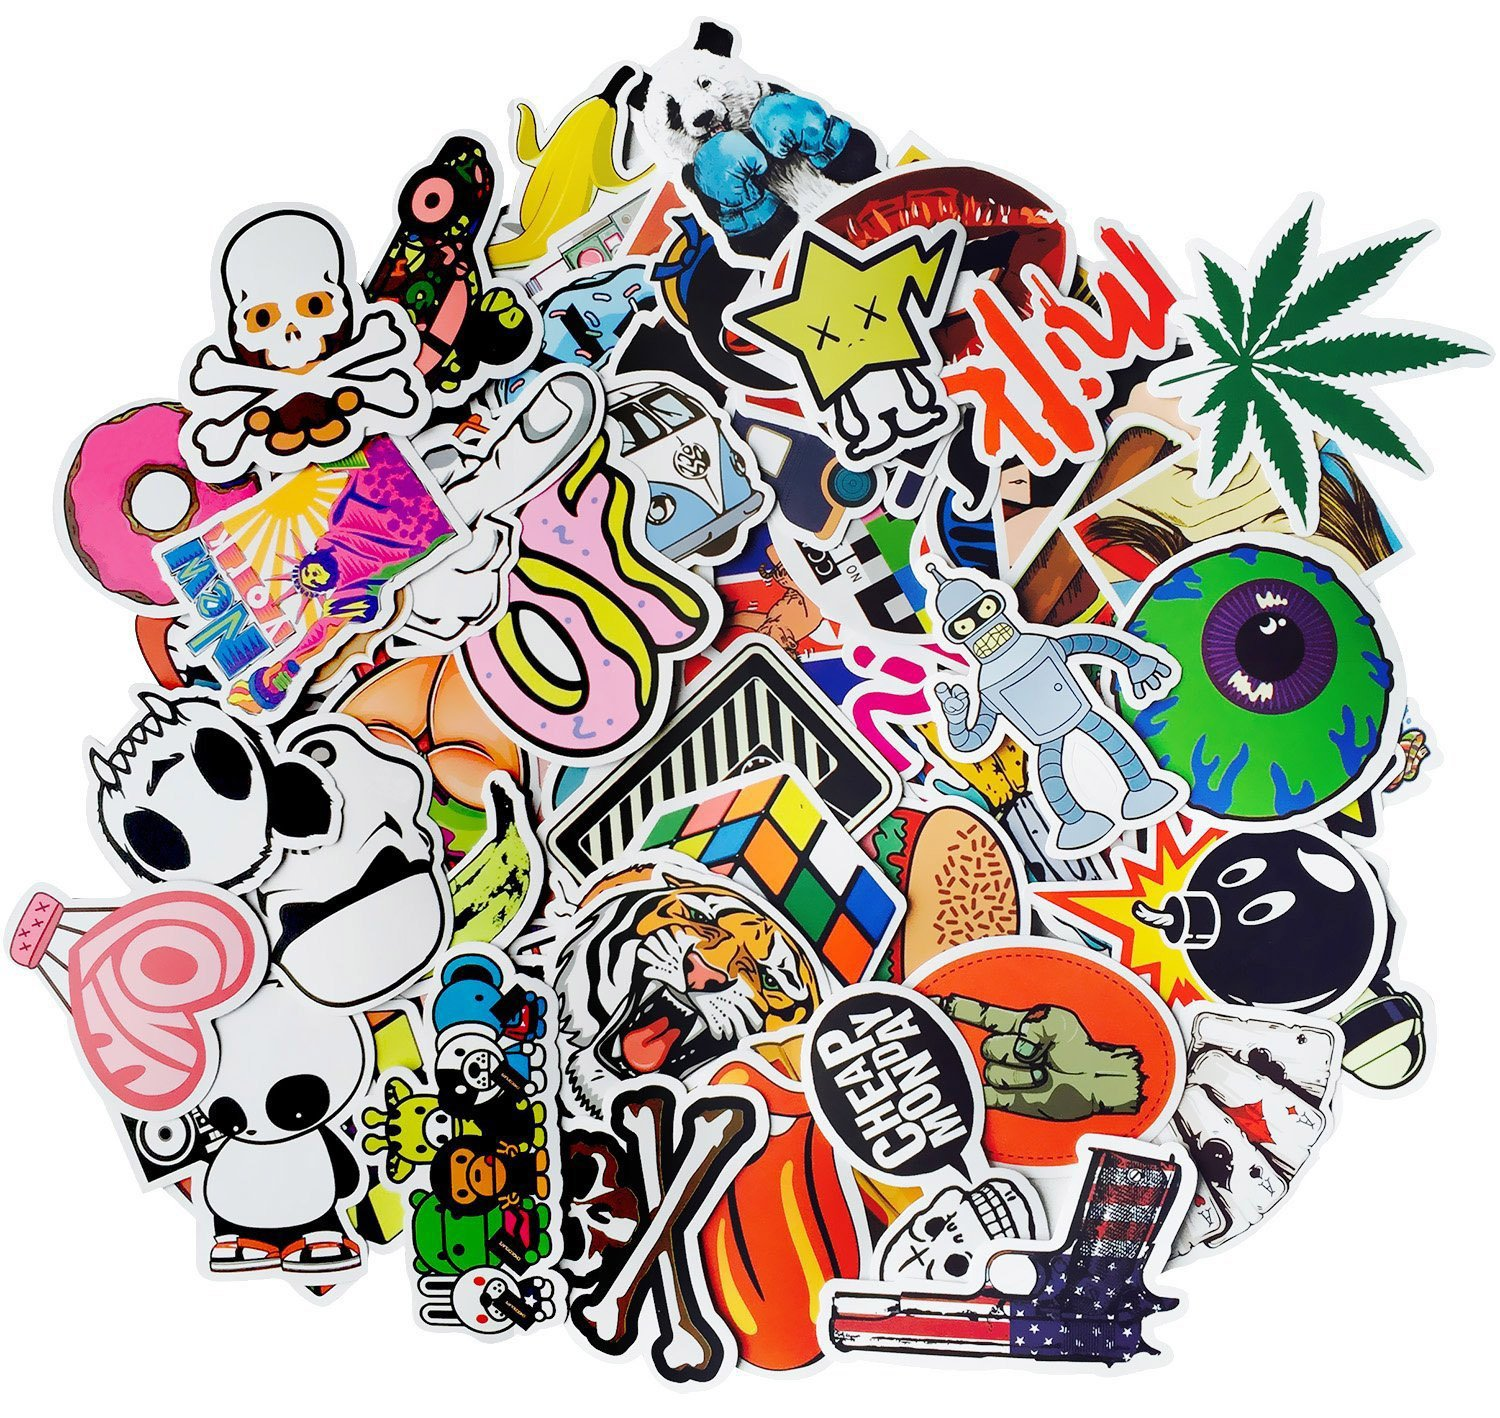 Aikuer 300pcs Laptop Stickers Waterproof Graffiti Vinyl Stickers, Cool Car Stickers Motorcycle Bicycle Luggage Decal Graffiti Patches Skateboard Stickers - Not Repeat Random Stickers Pack